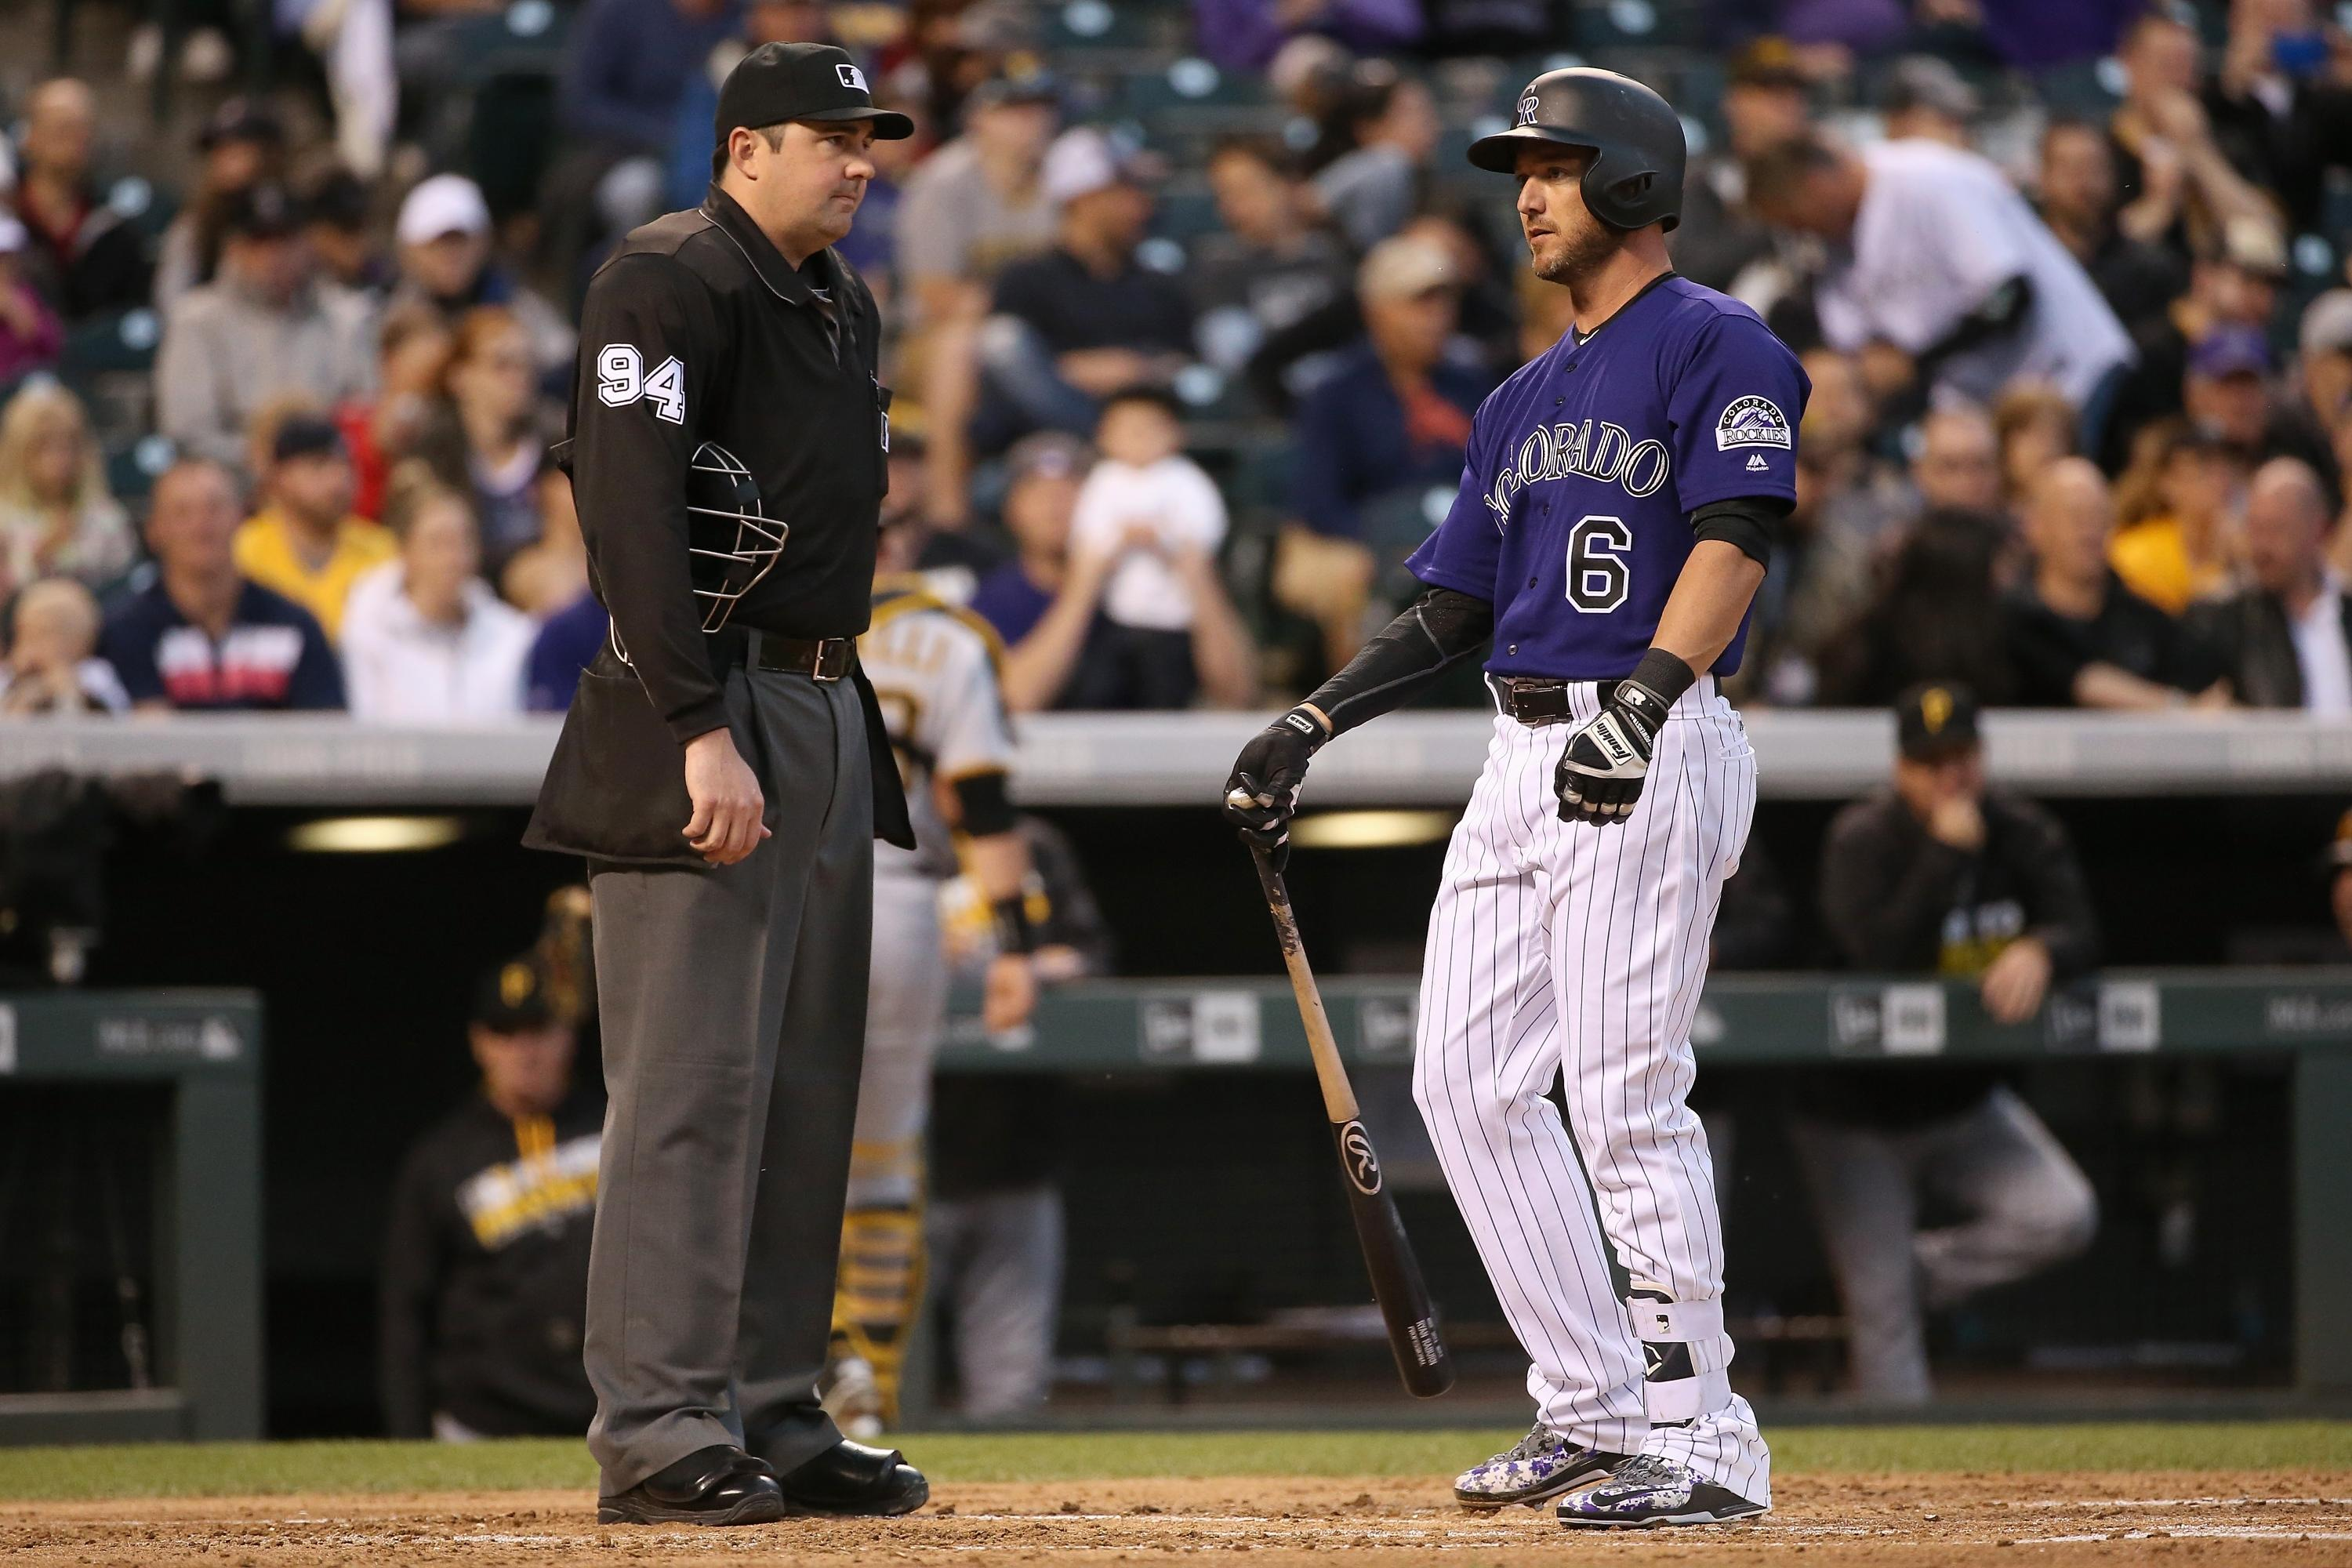 This idea could make MLB's replay reviews a lot more interesting